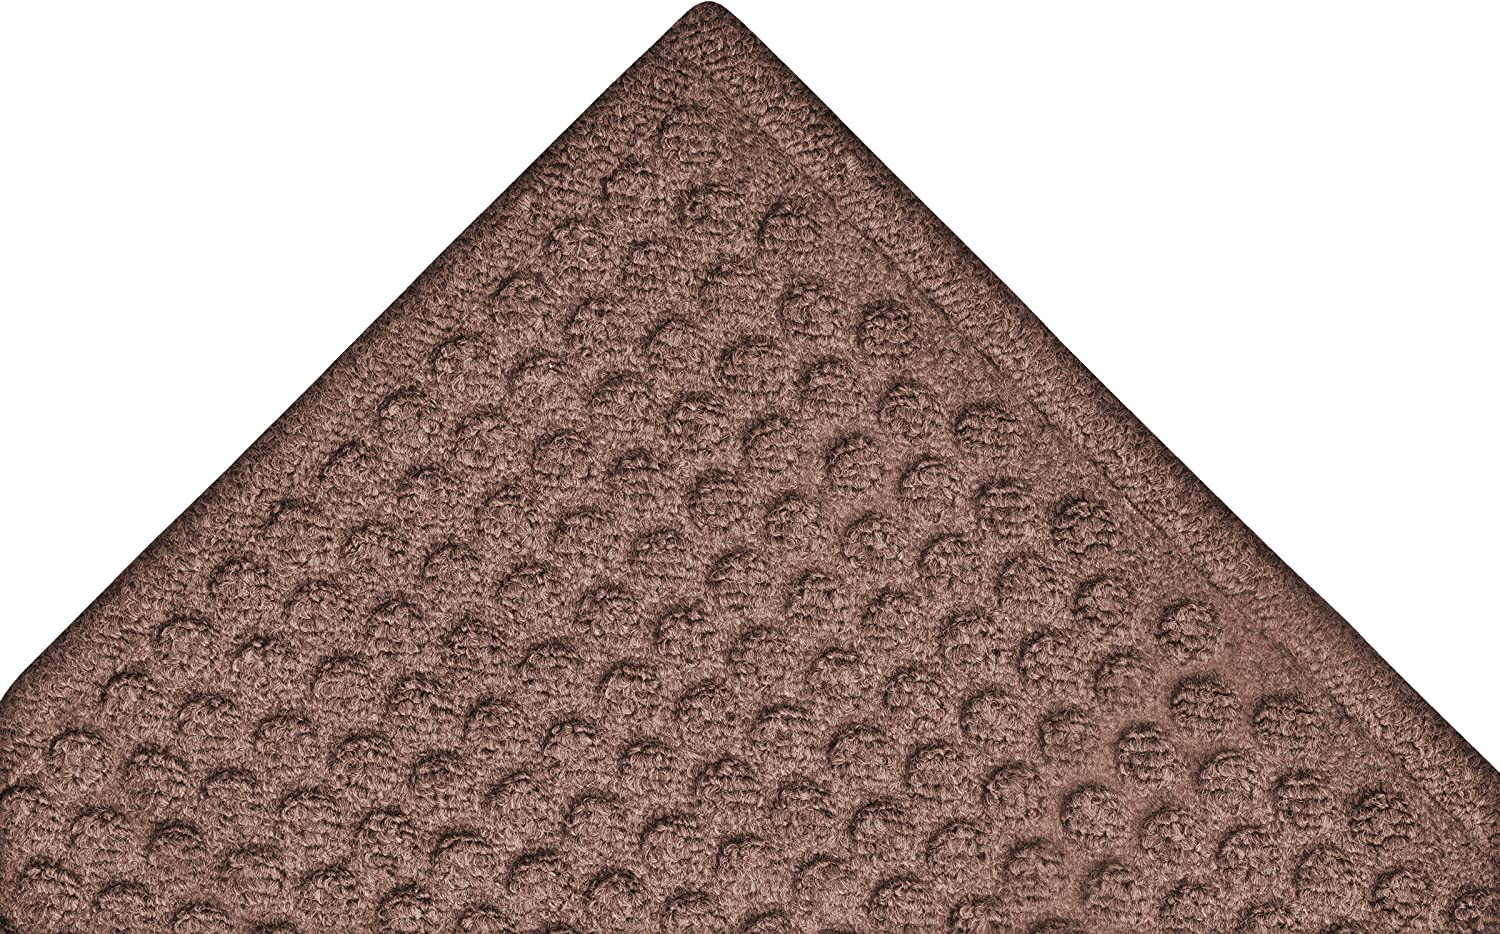 Notrax 150 Aqua Trap Entrance Mat, for Main Entranceways and Heavy Traffic Areas, 3' Width x 4' Length x 3 8  Thickness, Brown